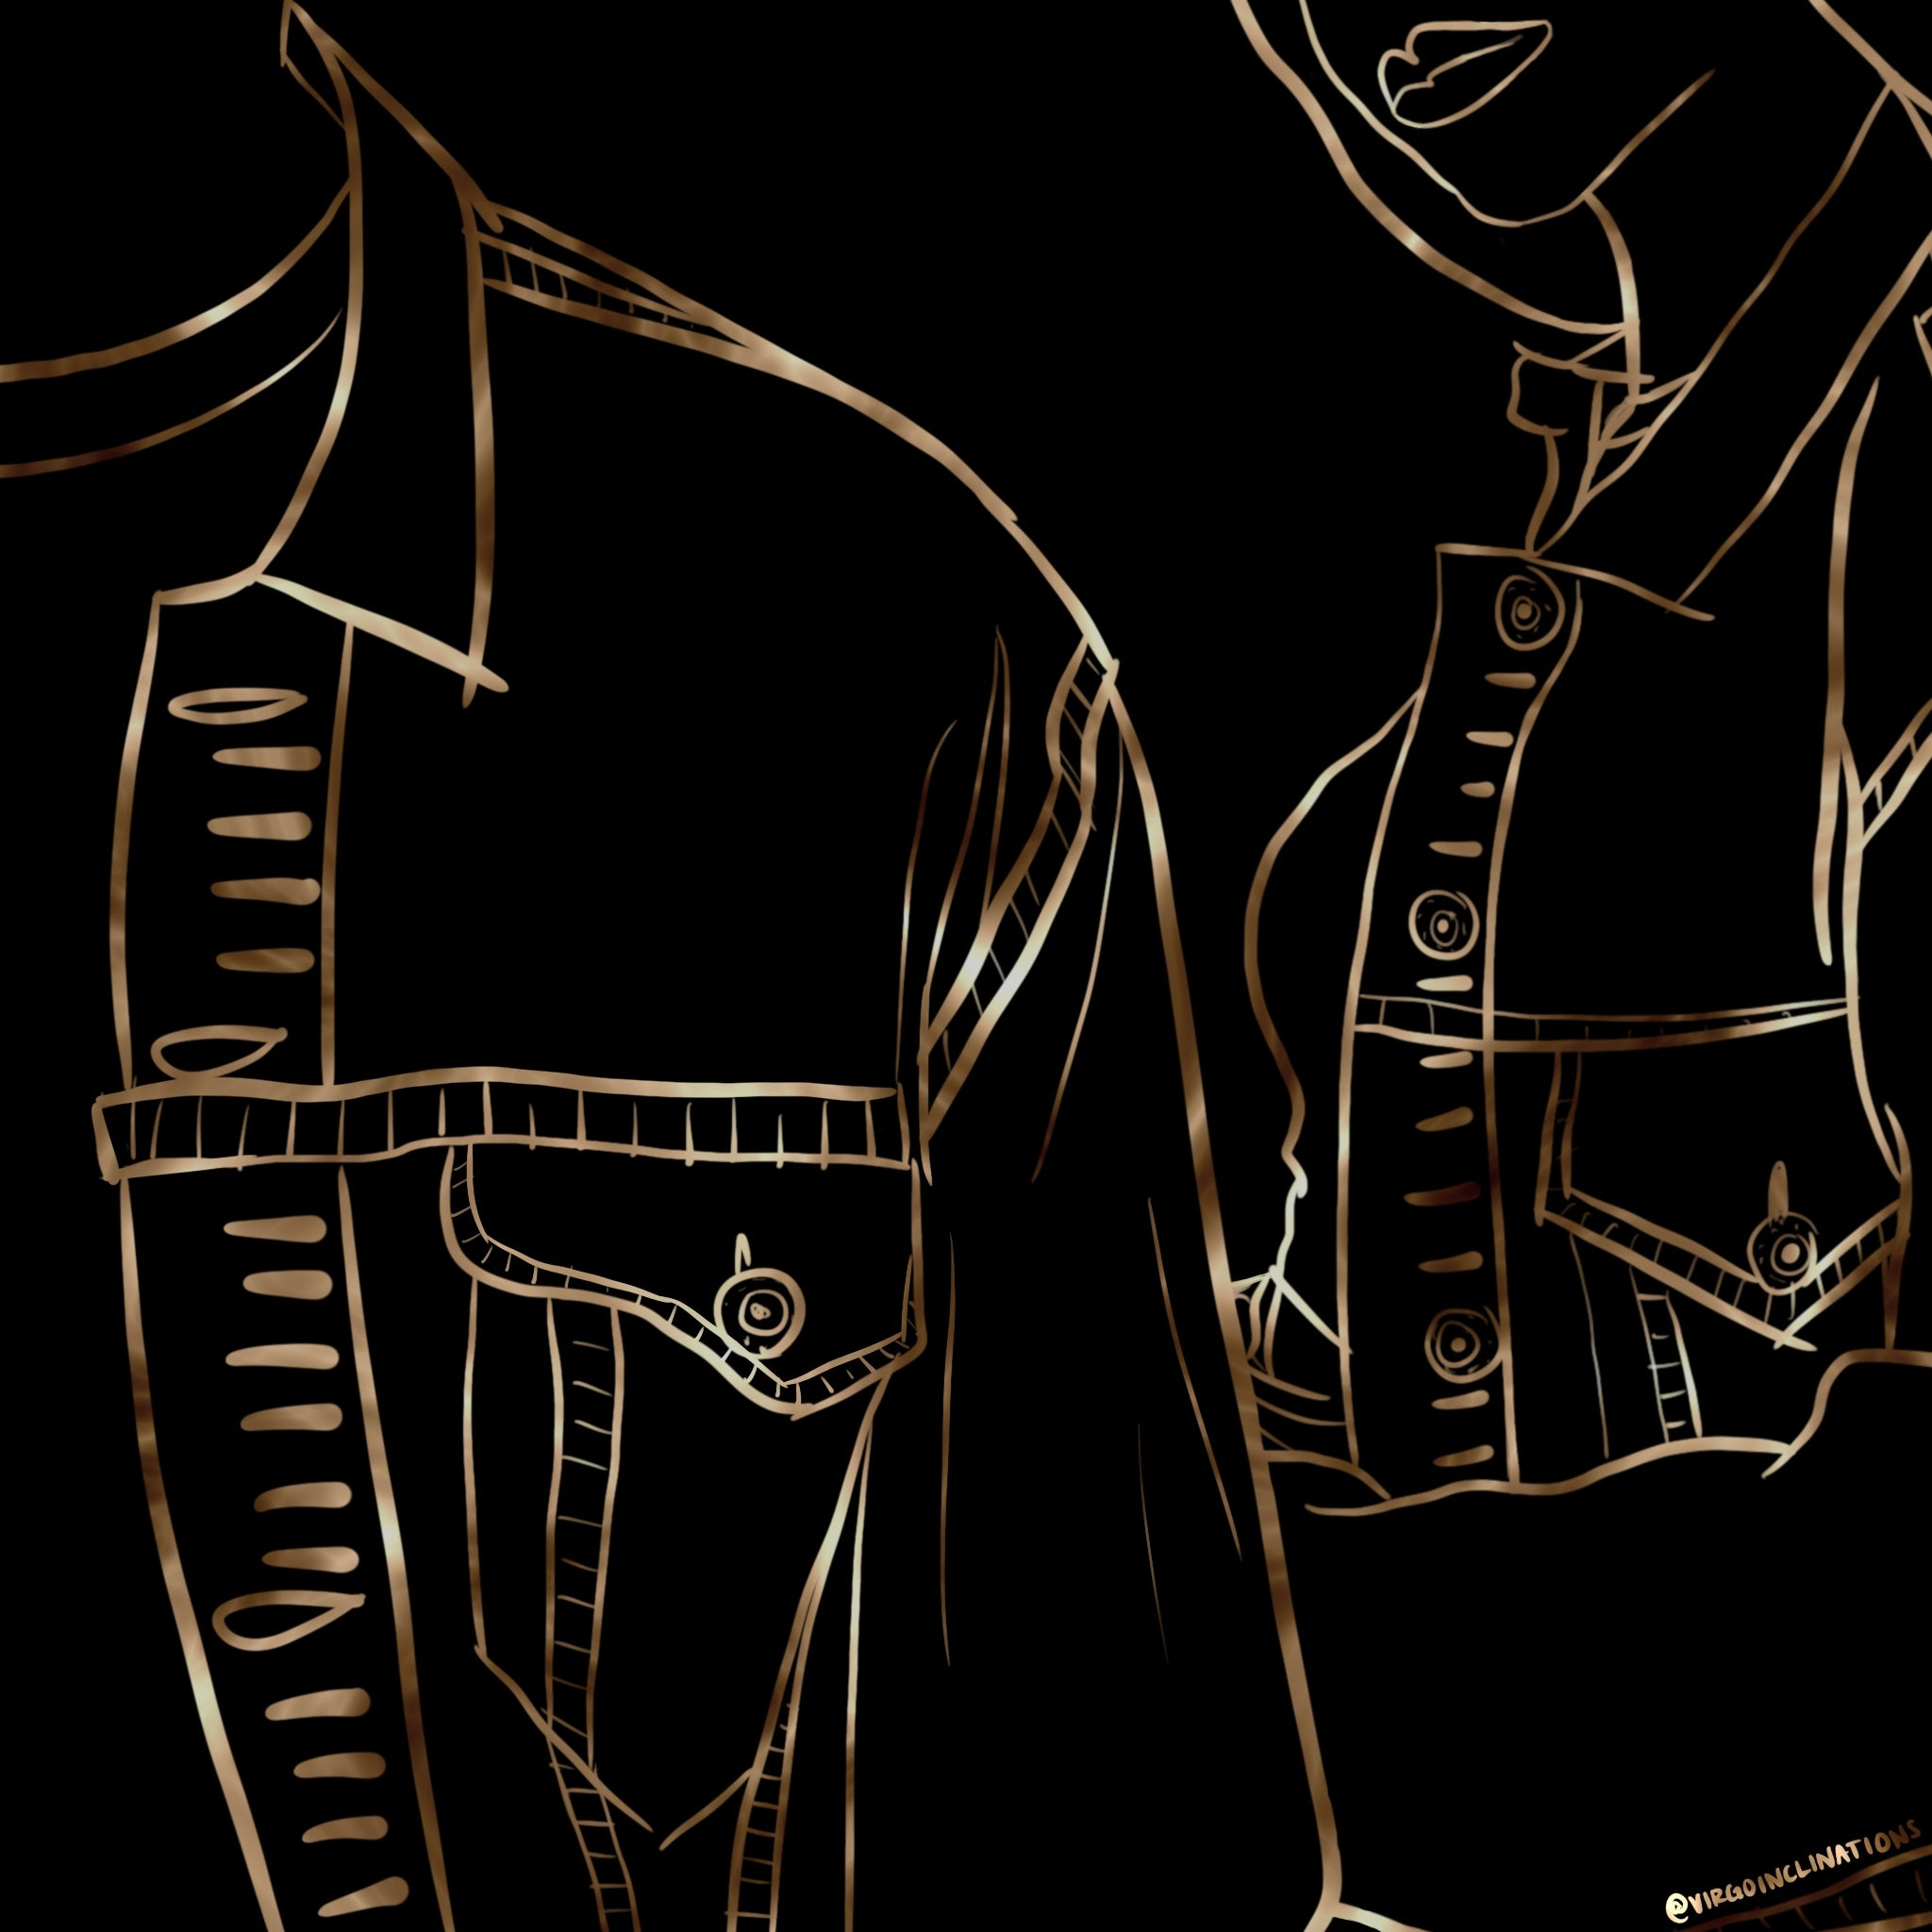 Gold lined illustration with black background